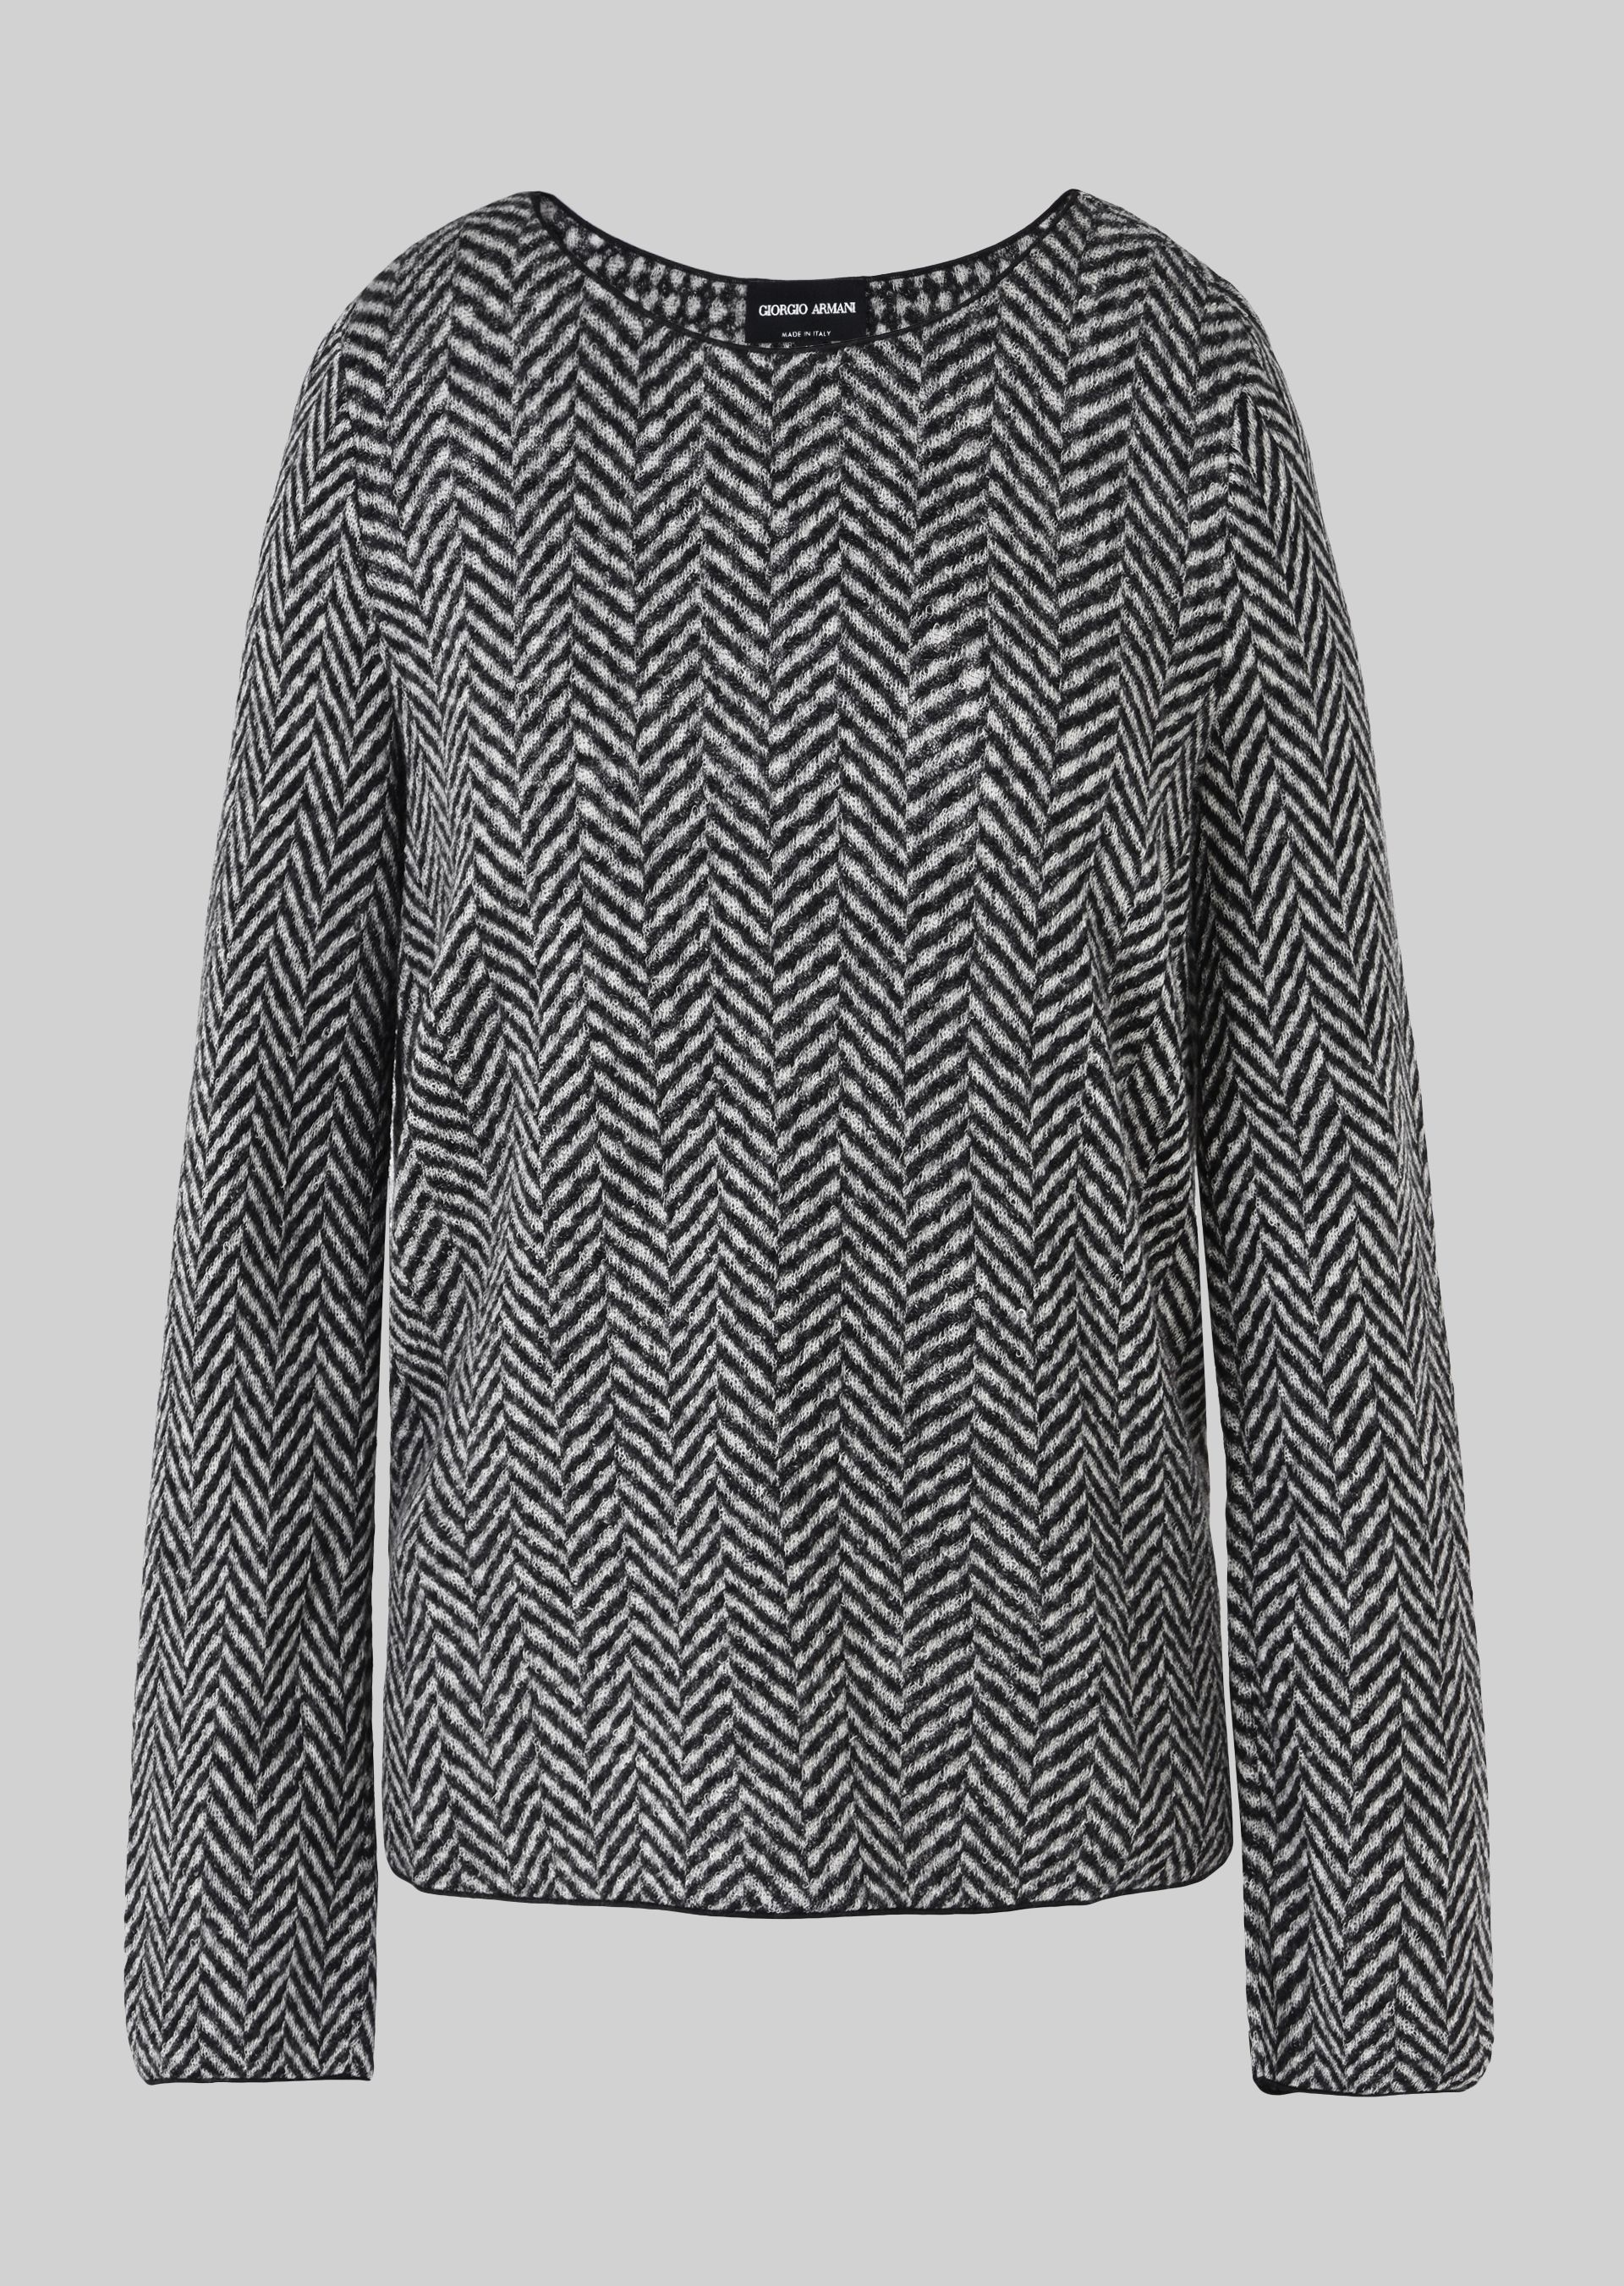 GIORGIO ARMANI REVERSIBLE WOOL SWEATER Knitted Top D r